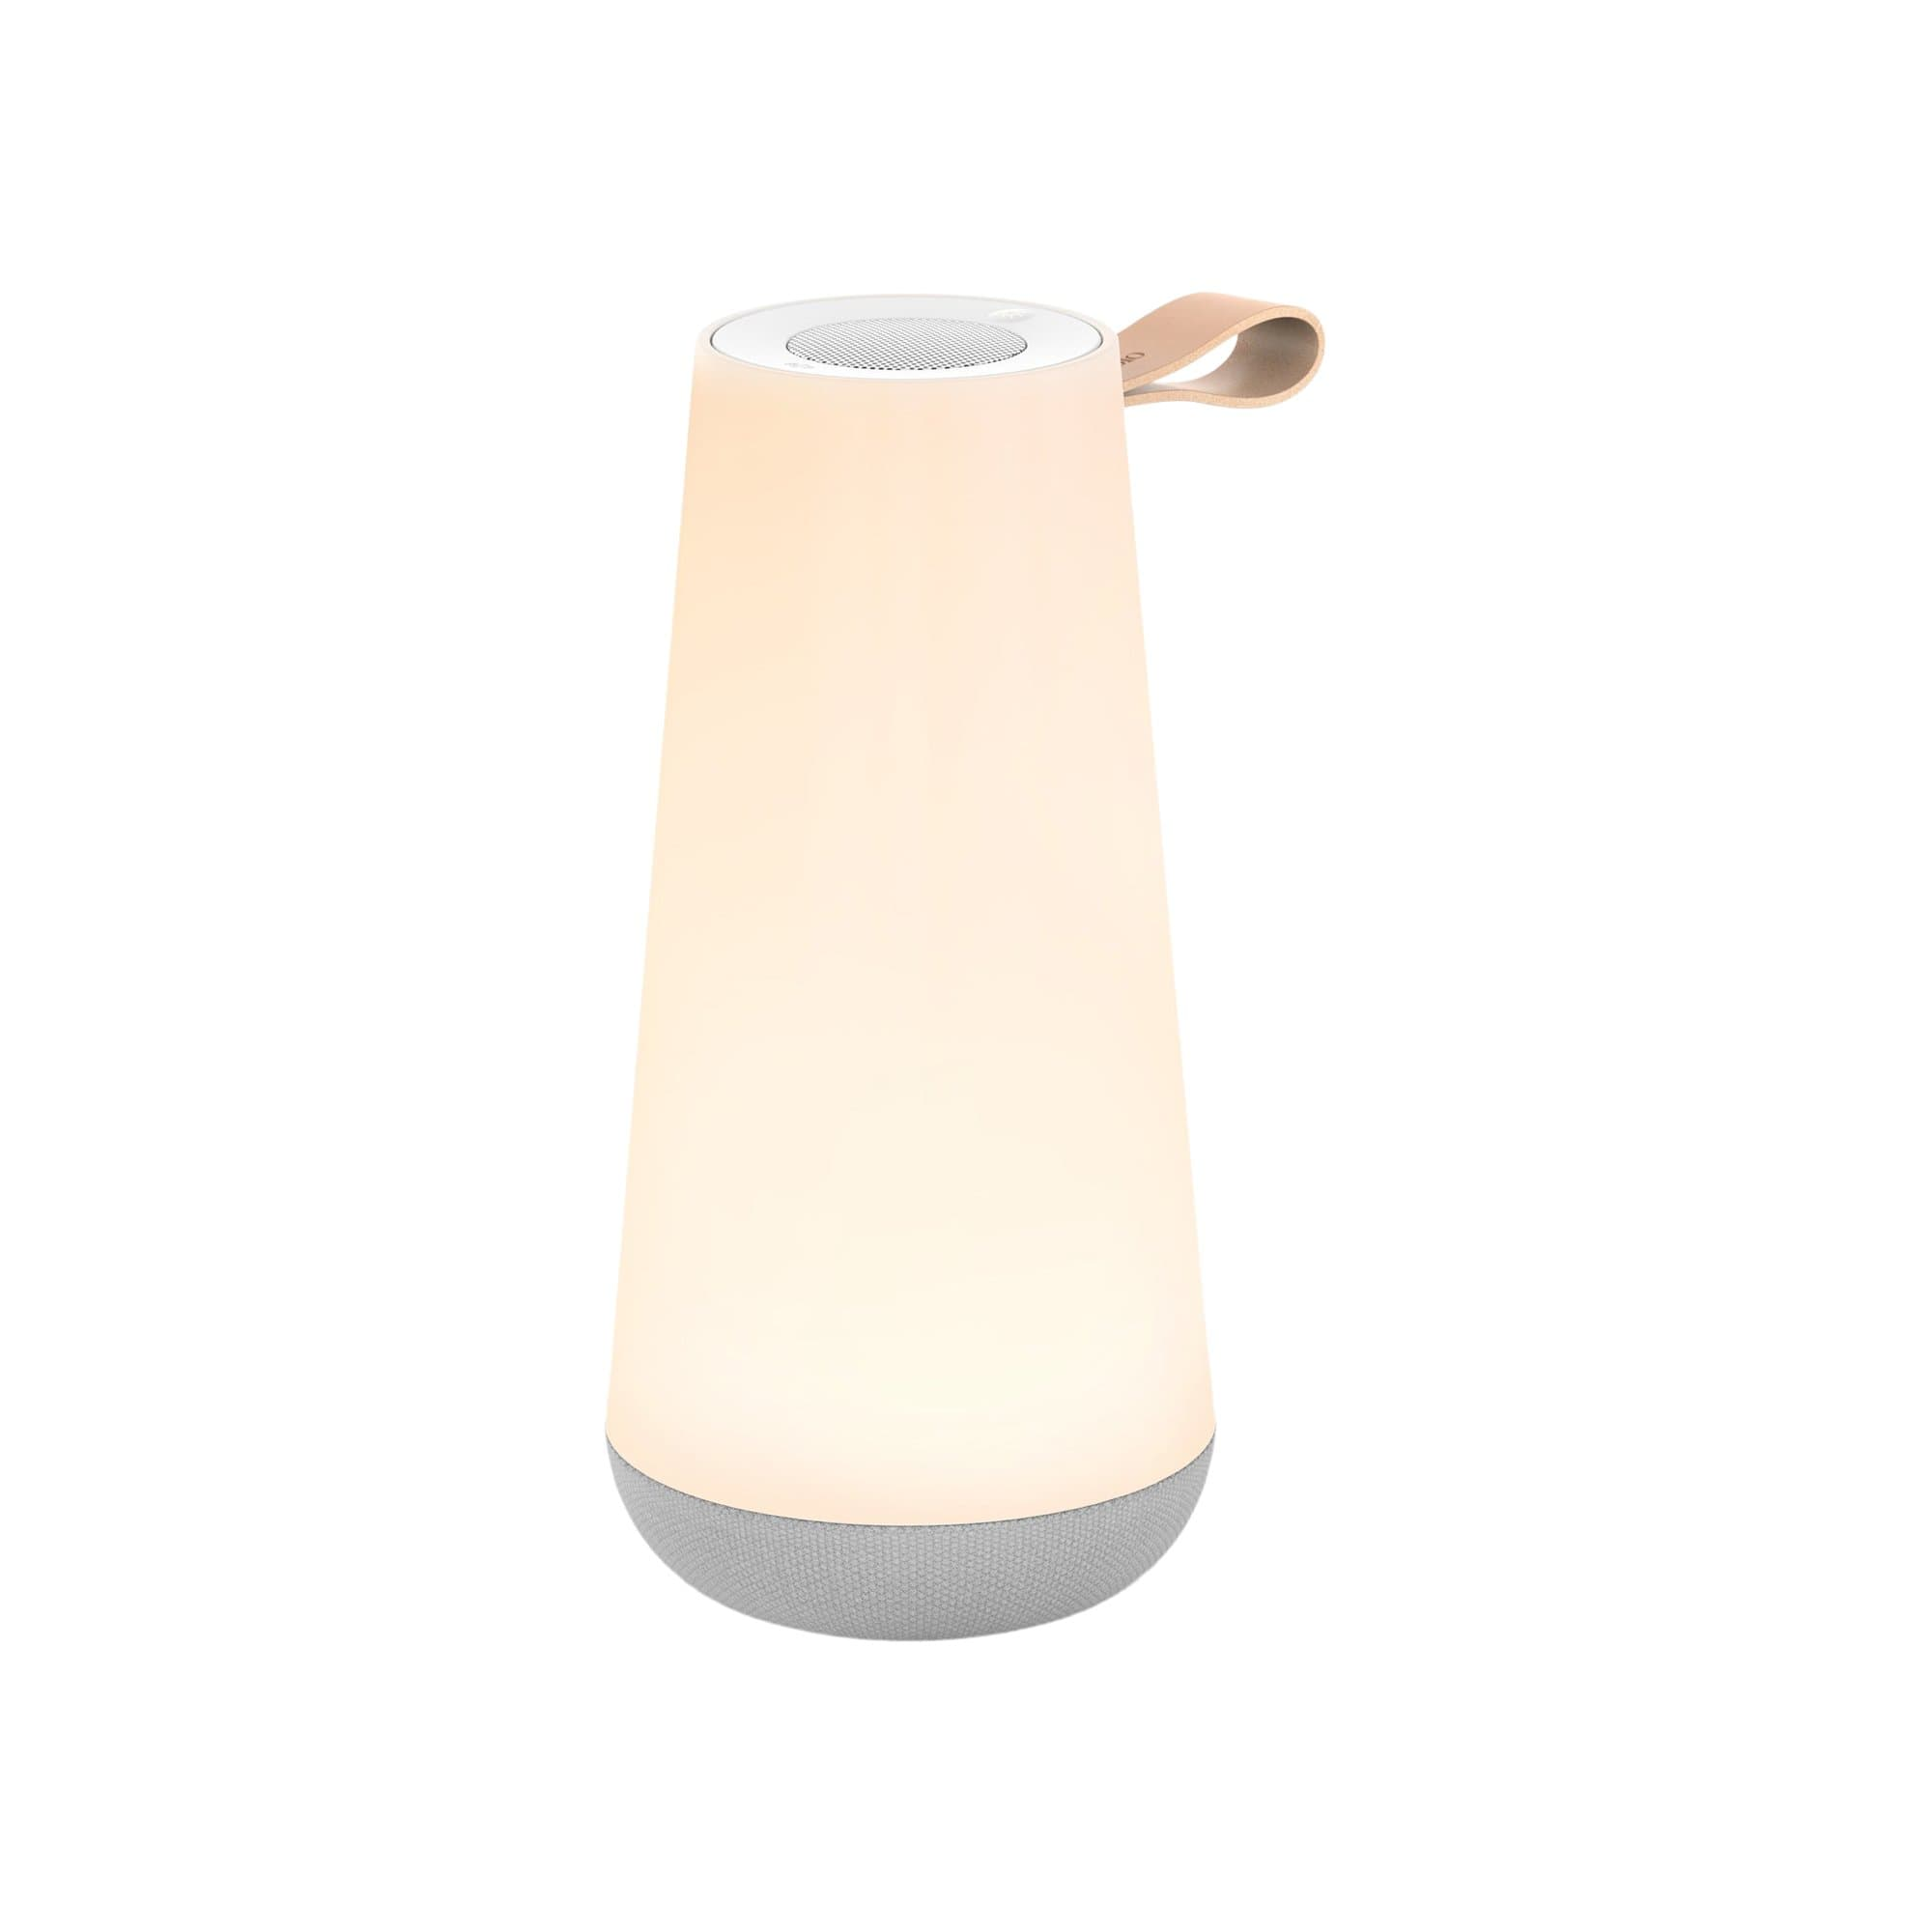 Pablo Designs Table Matte White Uma Mini Light and Speaker